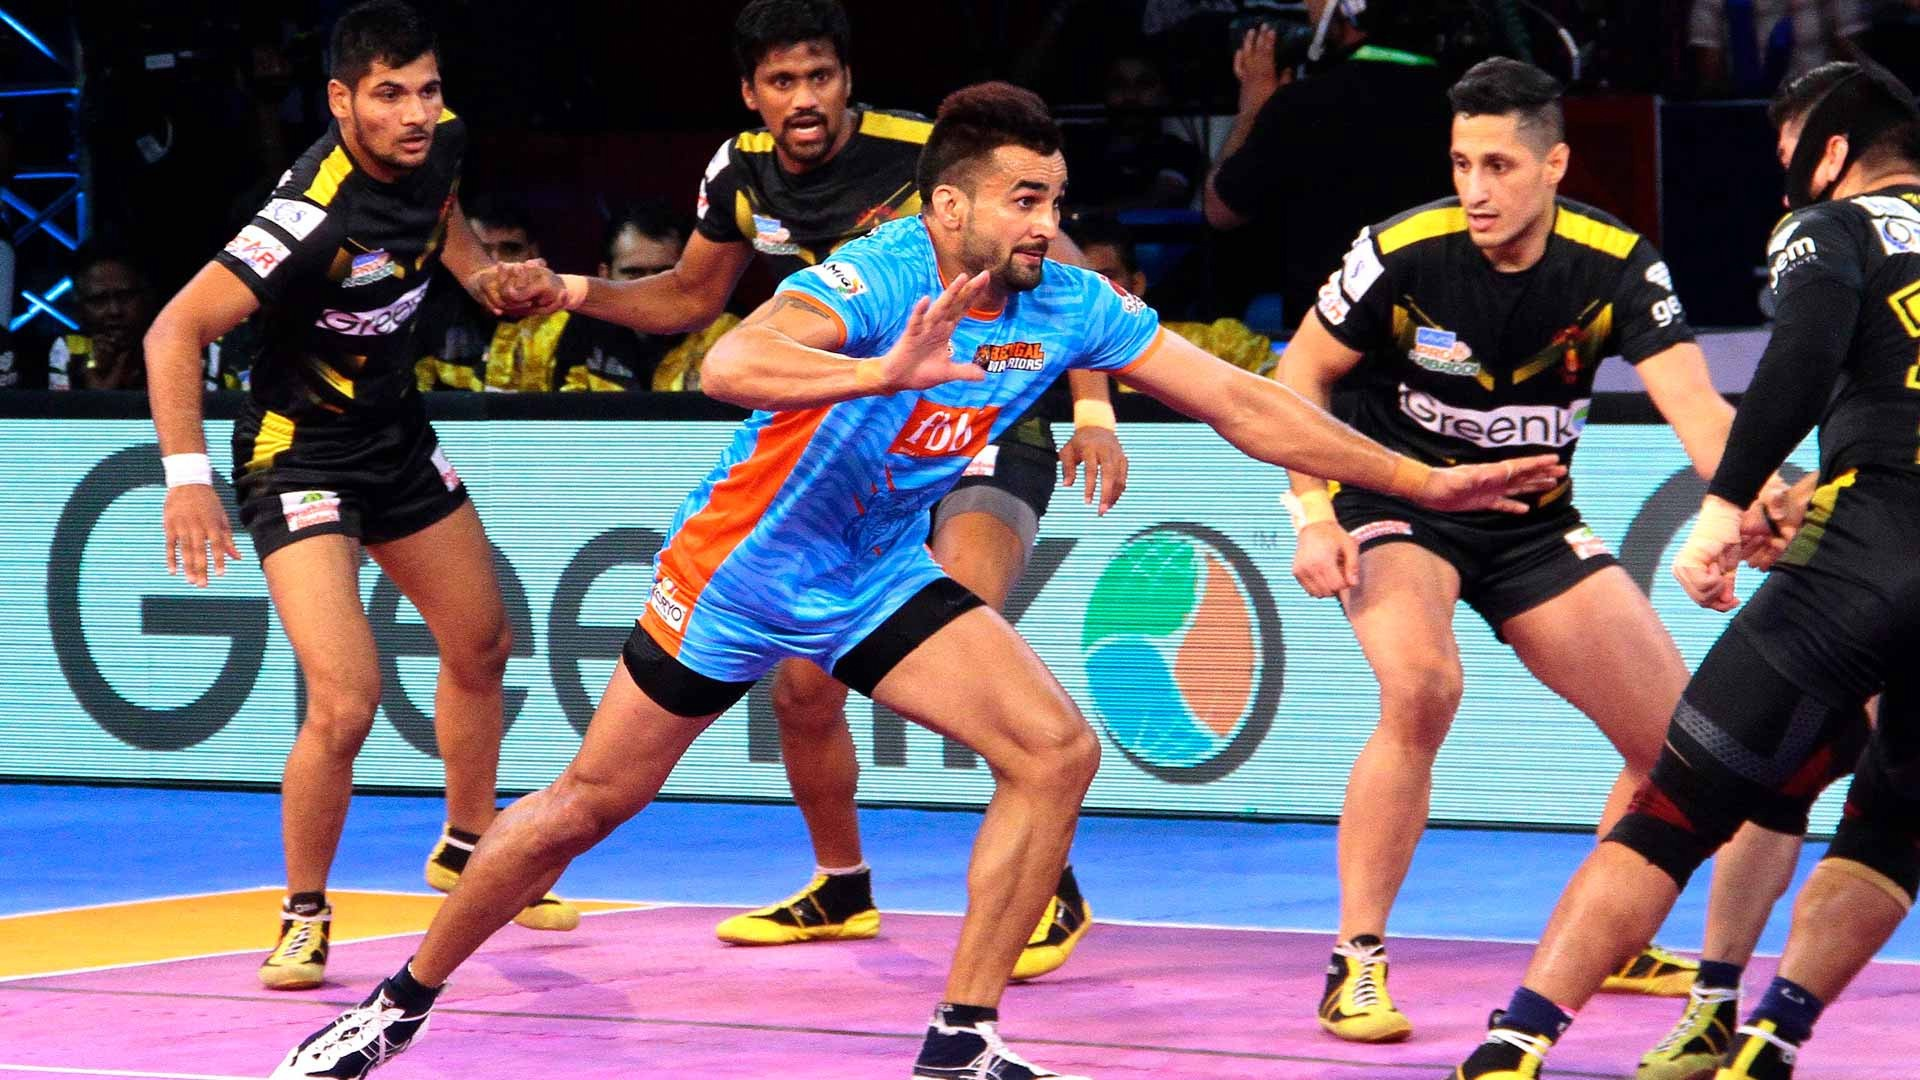 services in the game of Kabaddi